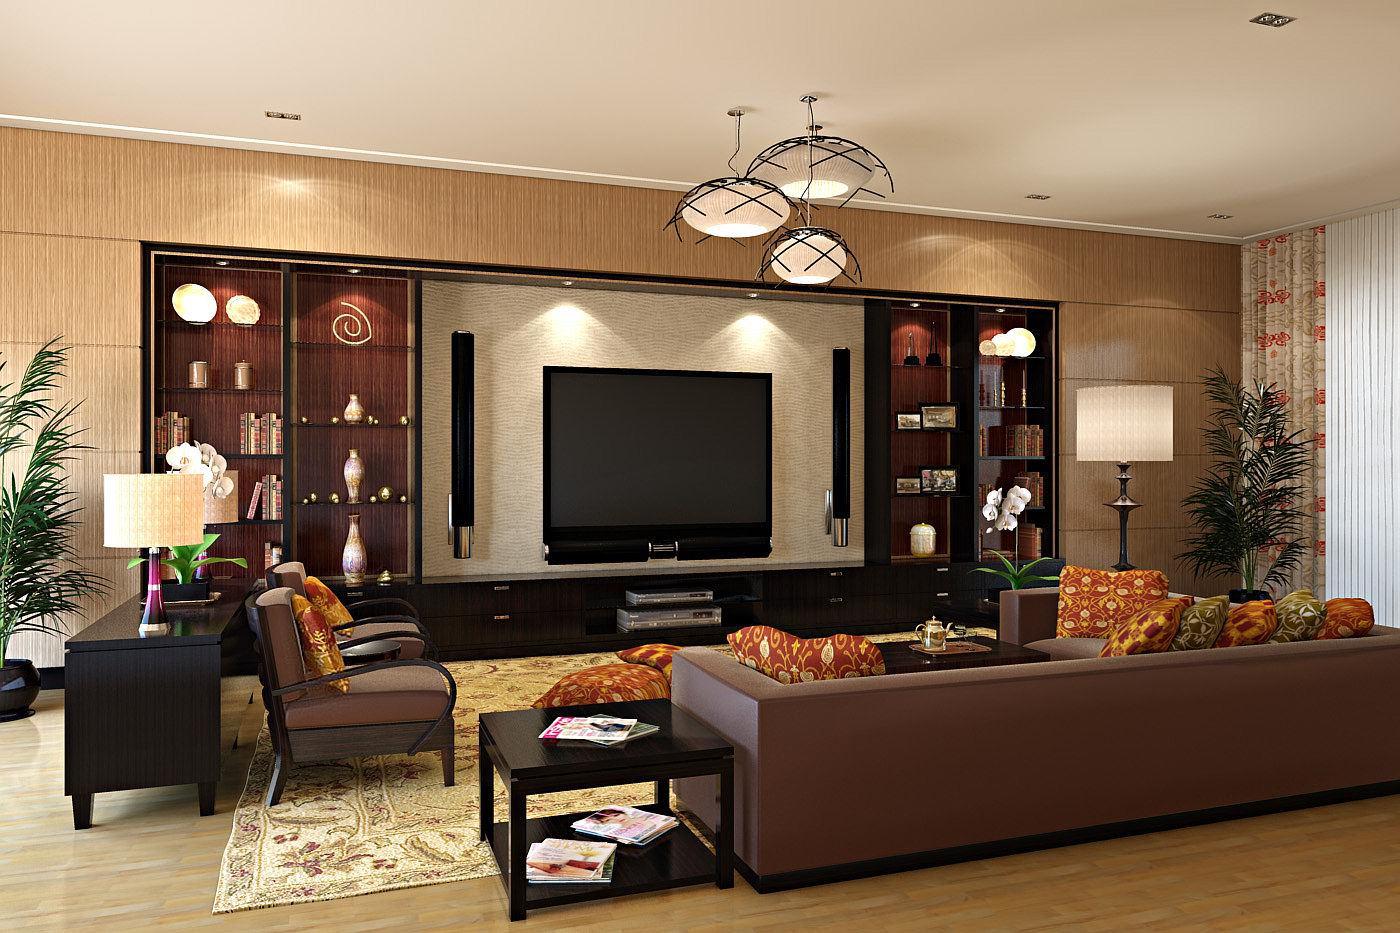 furniture design of living room sectional layout innovative ideas to decorate your decoration designs guide